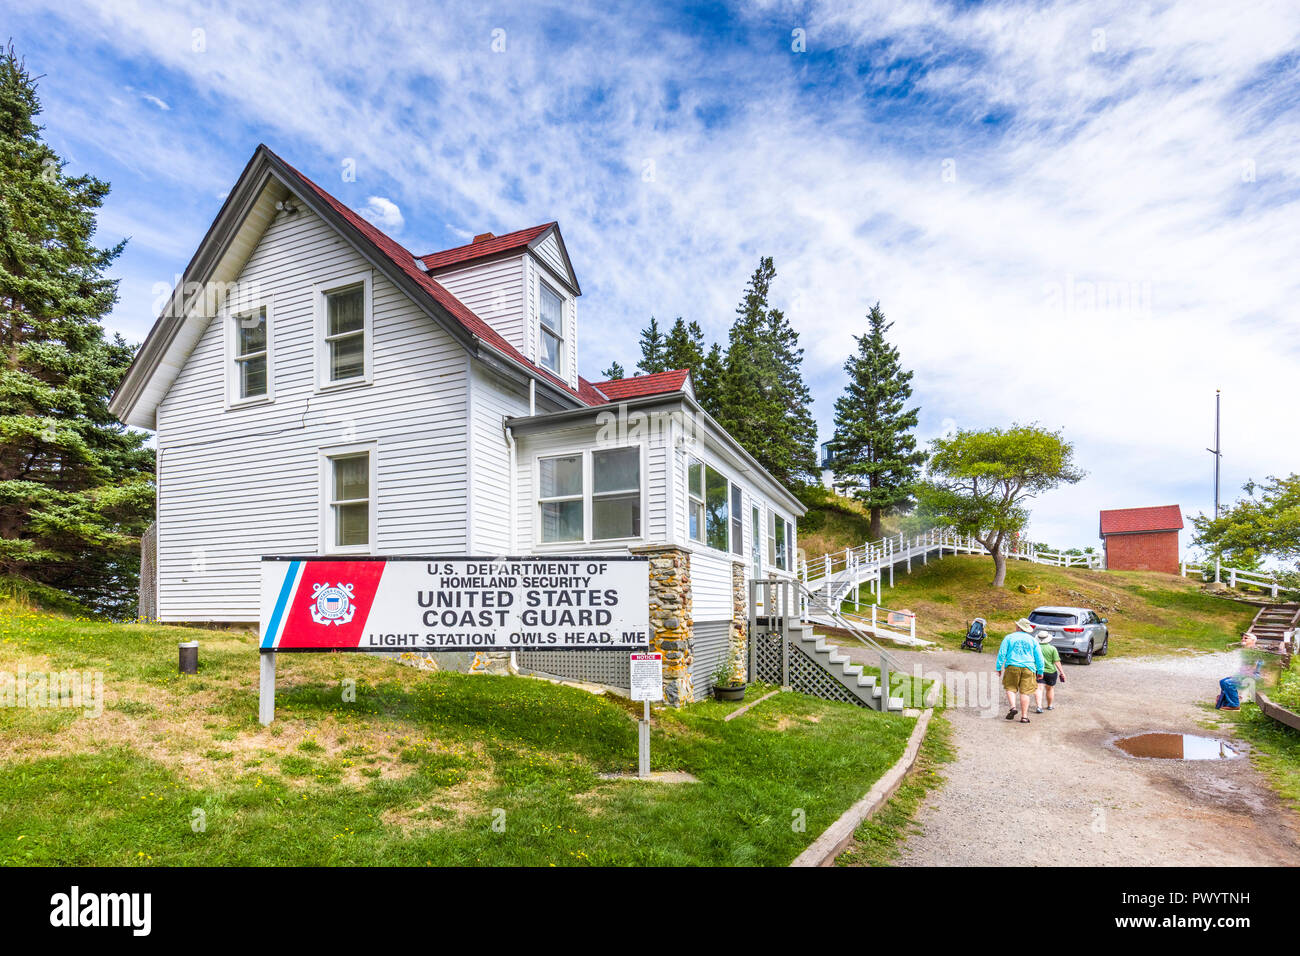 Keepers House built 1854 at Owls Head Lighthouse in Owls Head Light State Park on West Penobscot Bay in Maine in the United States - Stock Image